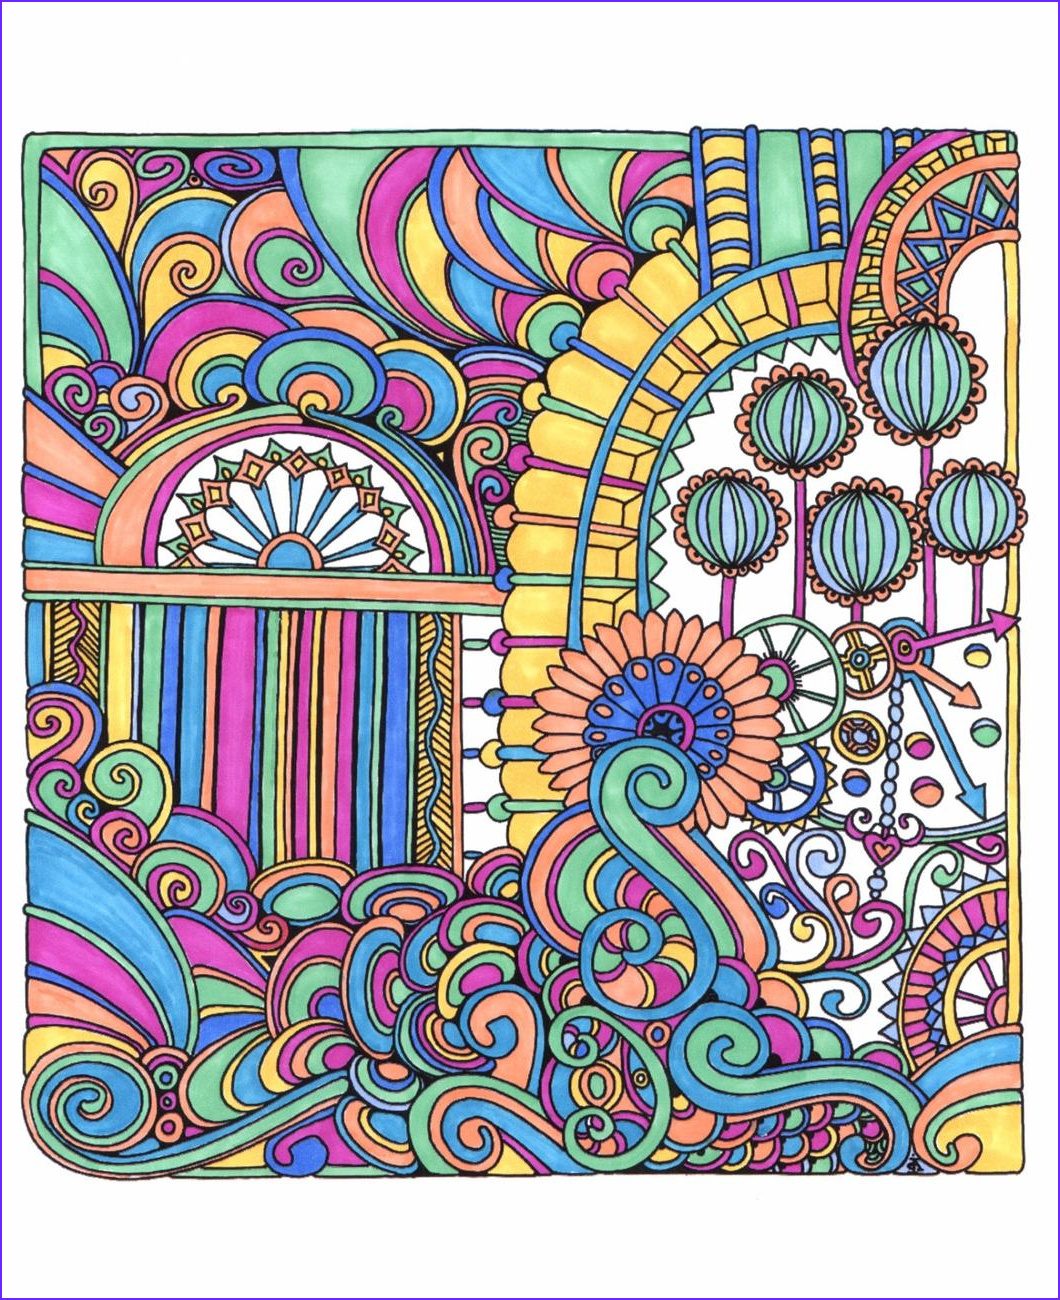 Coloring Stress Inspirational Photos Color Me Stress Free Nearly 100 Coloring Templates to